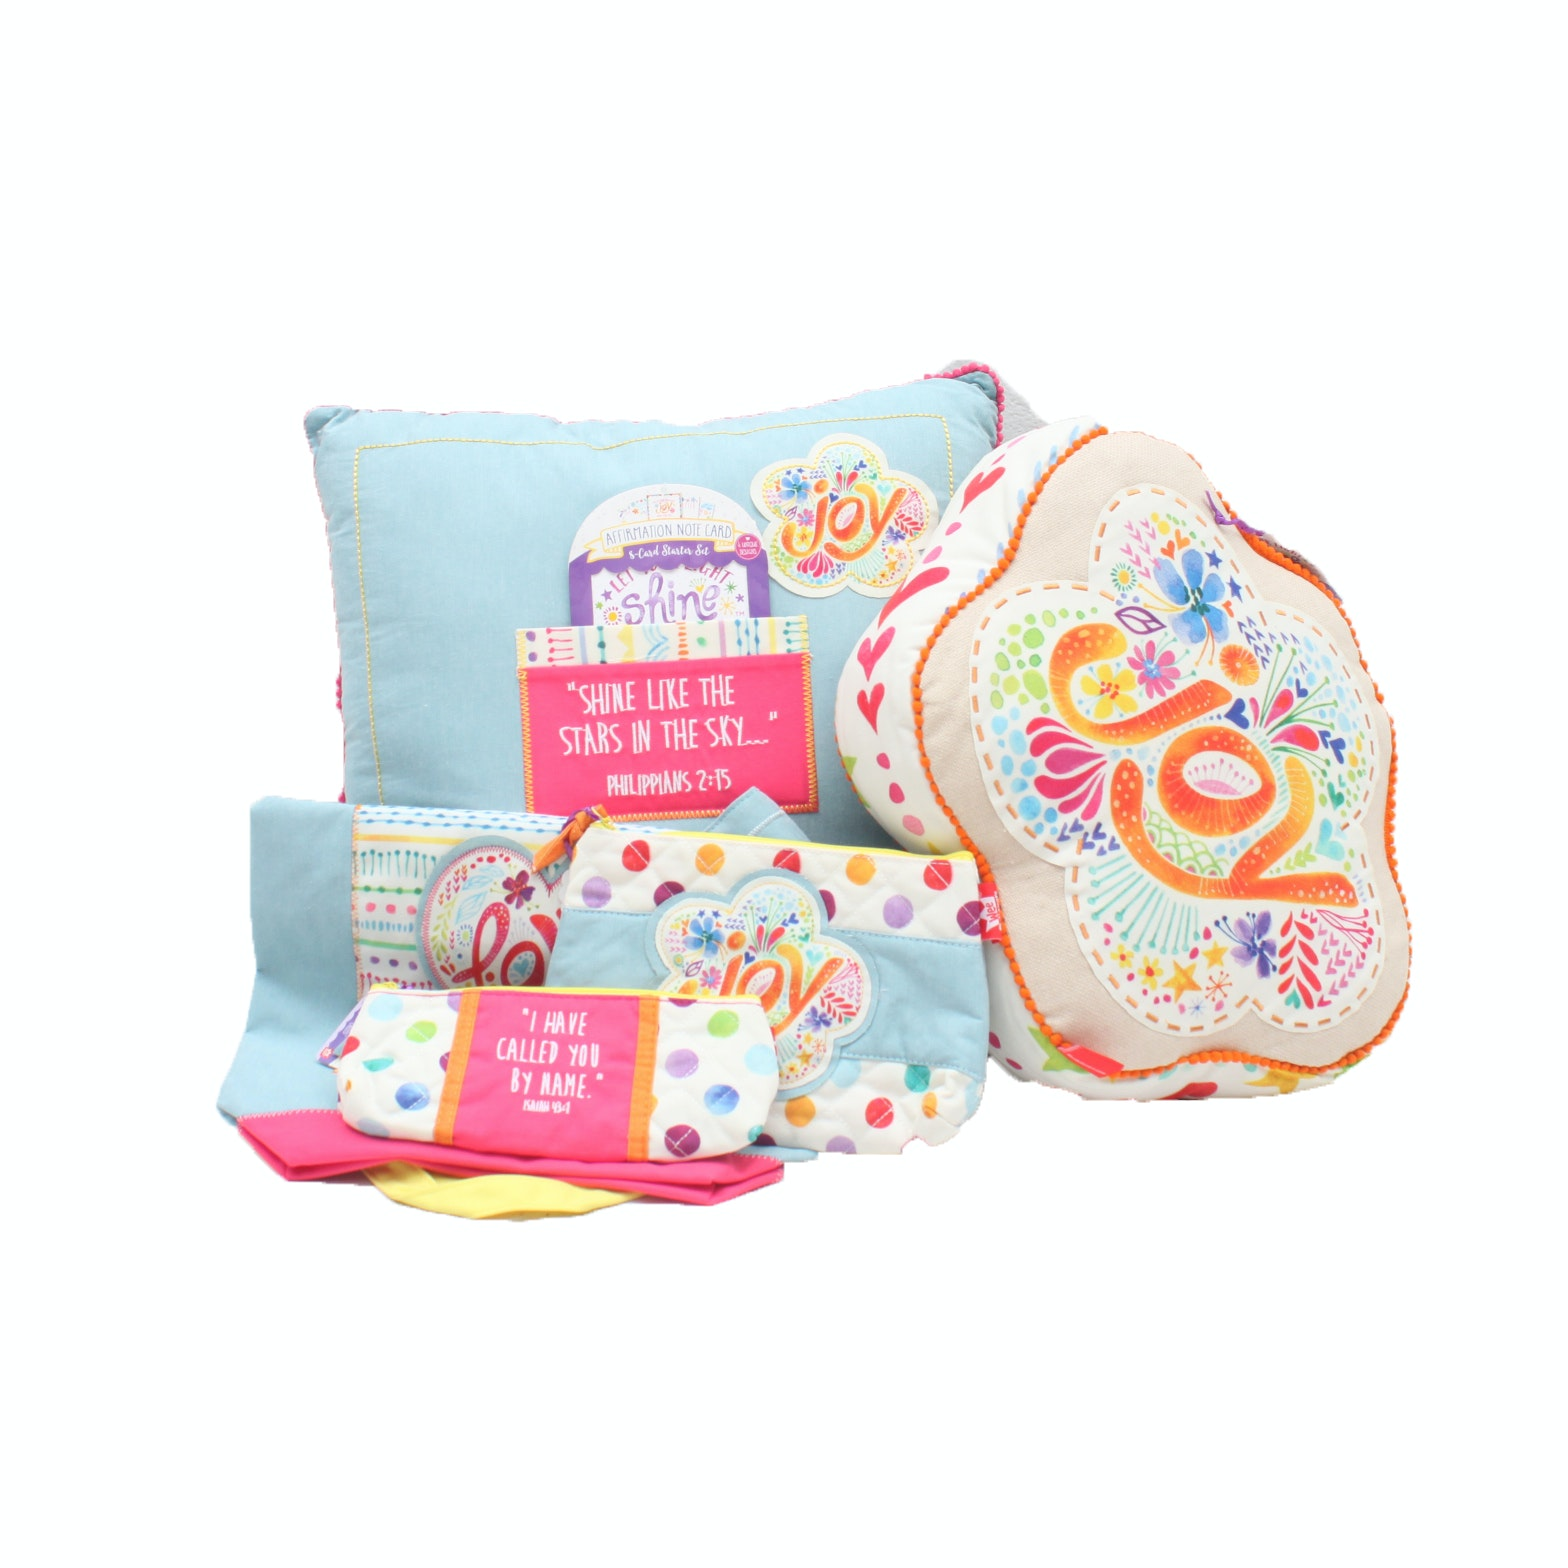 """Let Your Light Shine"" Decorative Throw Pillows and Accessory Bags"